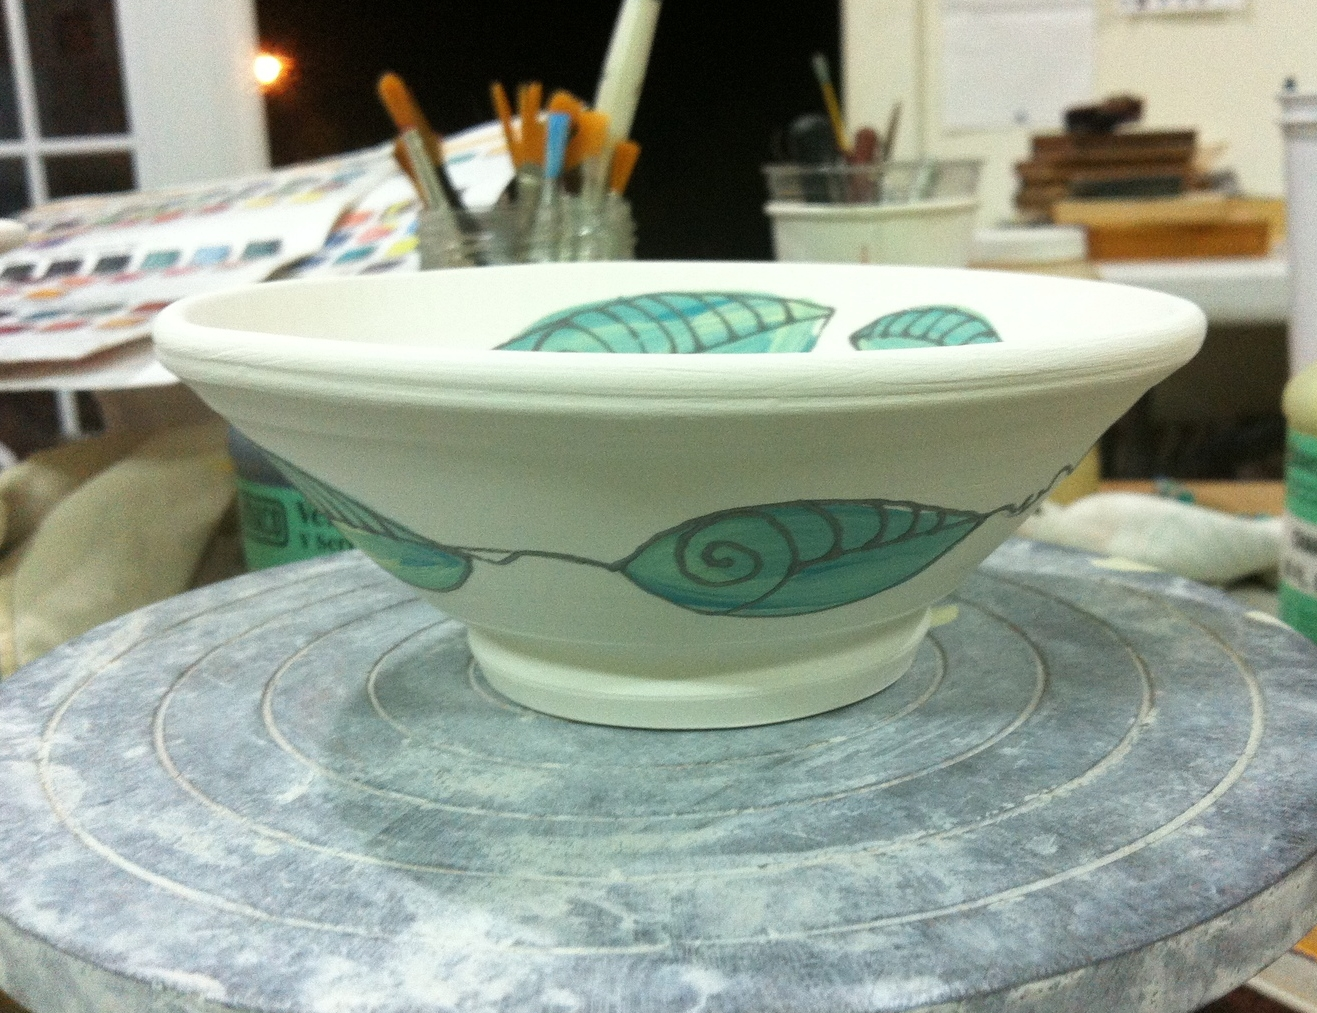 Like people, I believe bowls should be beautiful inside AND out!